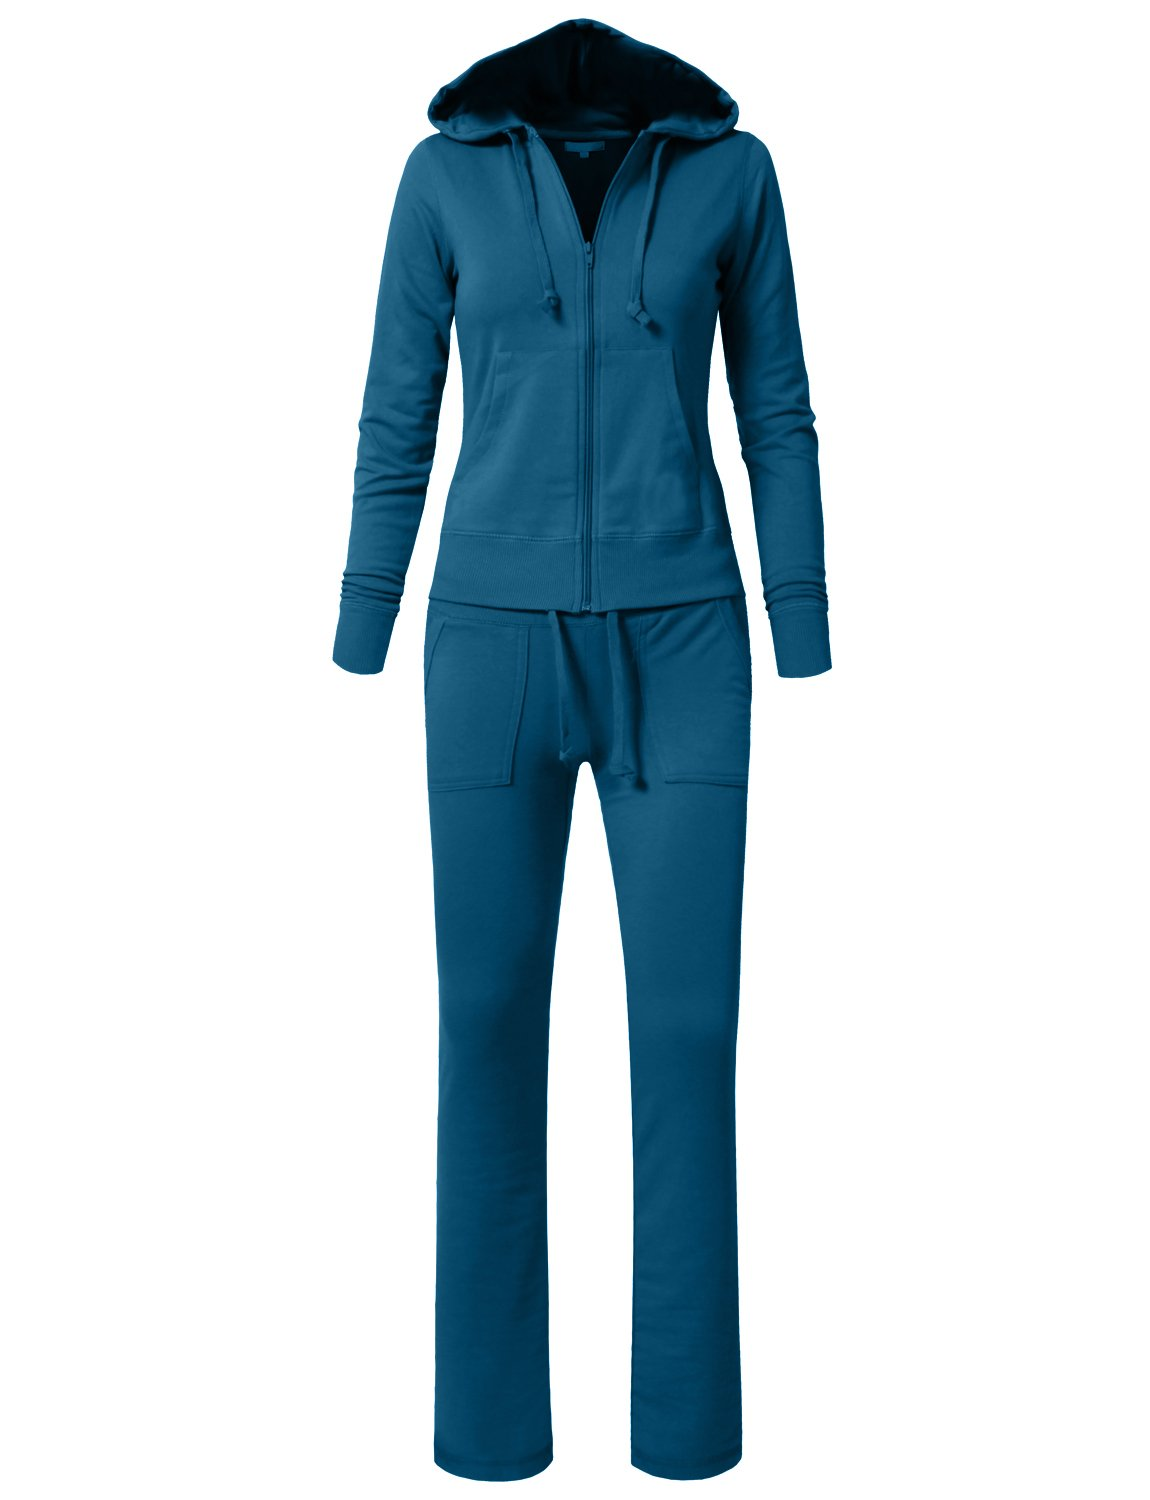 NE PEOPLE Womens Casual Hoodie and Sweatpants Basic Tracksuit Set S-3XL,Newts01-teal,Large